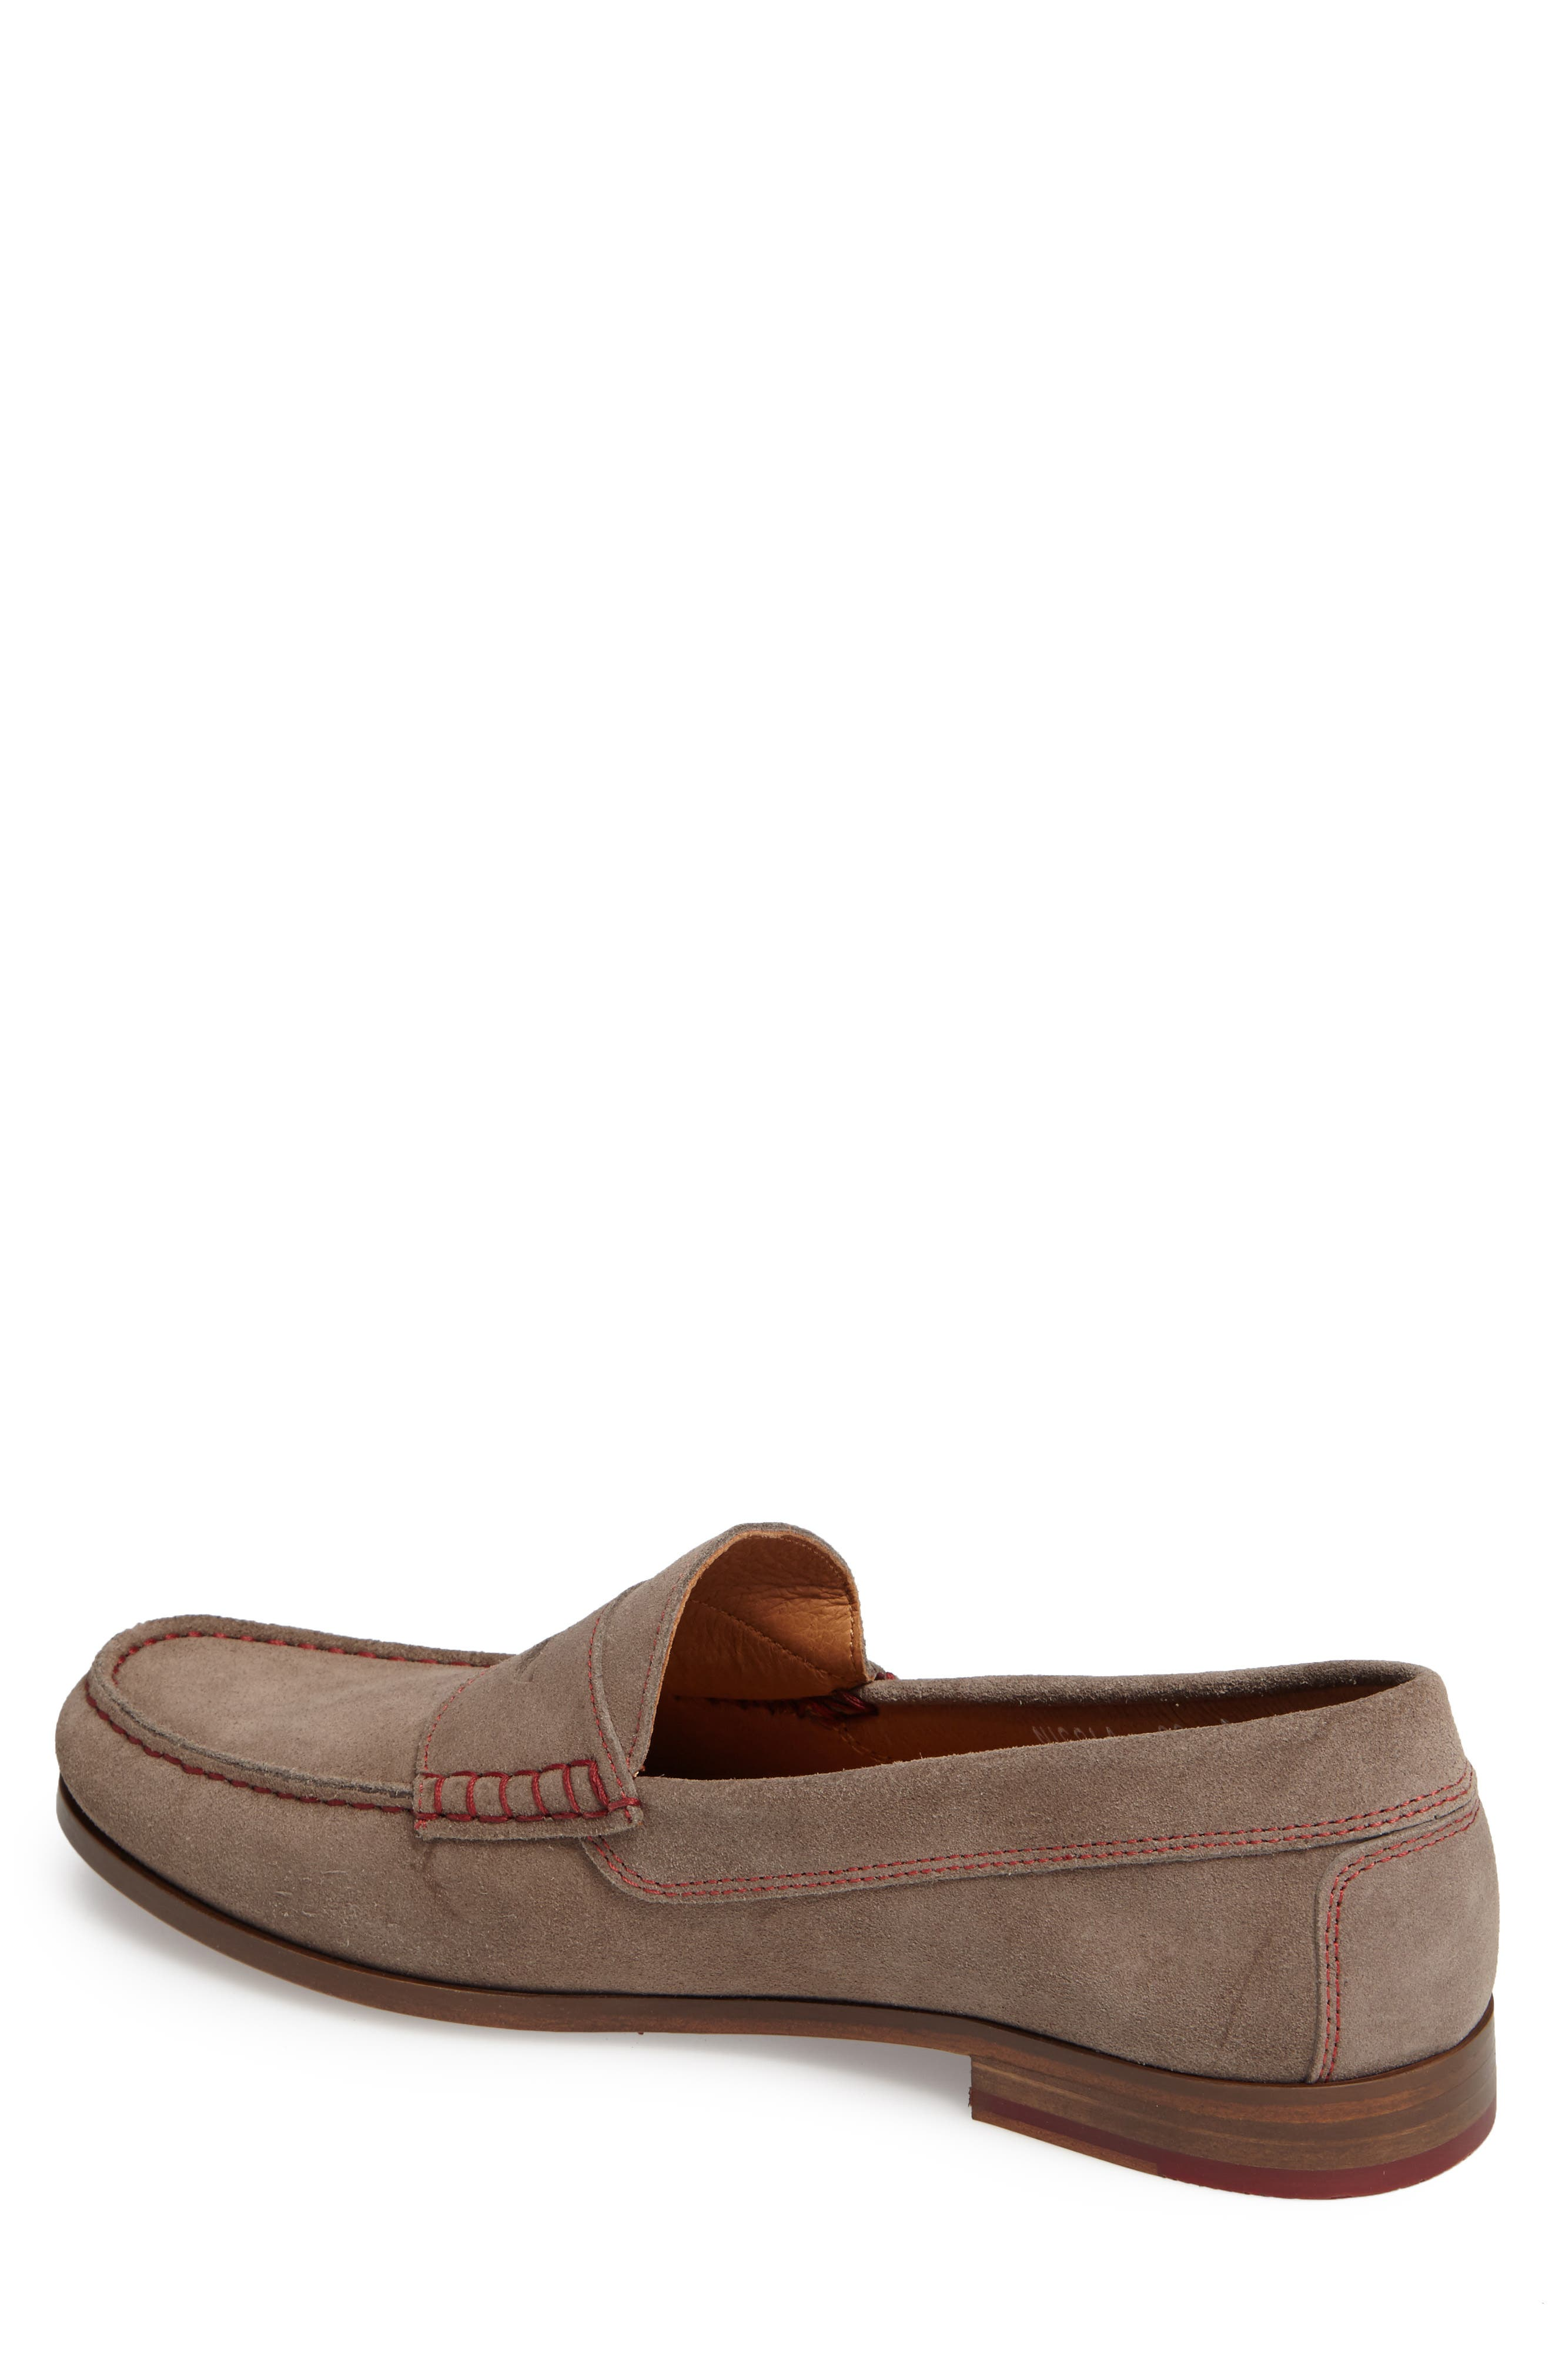 Nicola Penny Loafer,                             Alternate thumbnail 18, color,